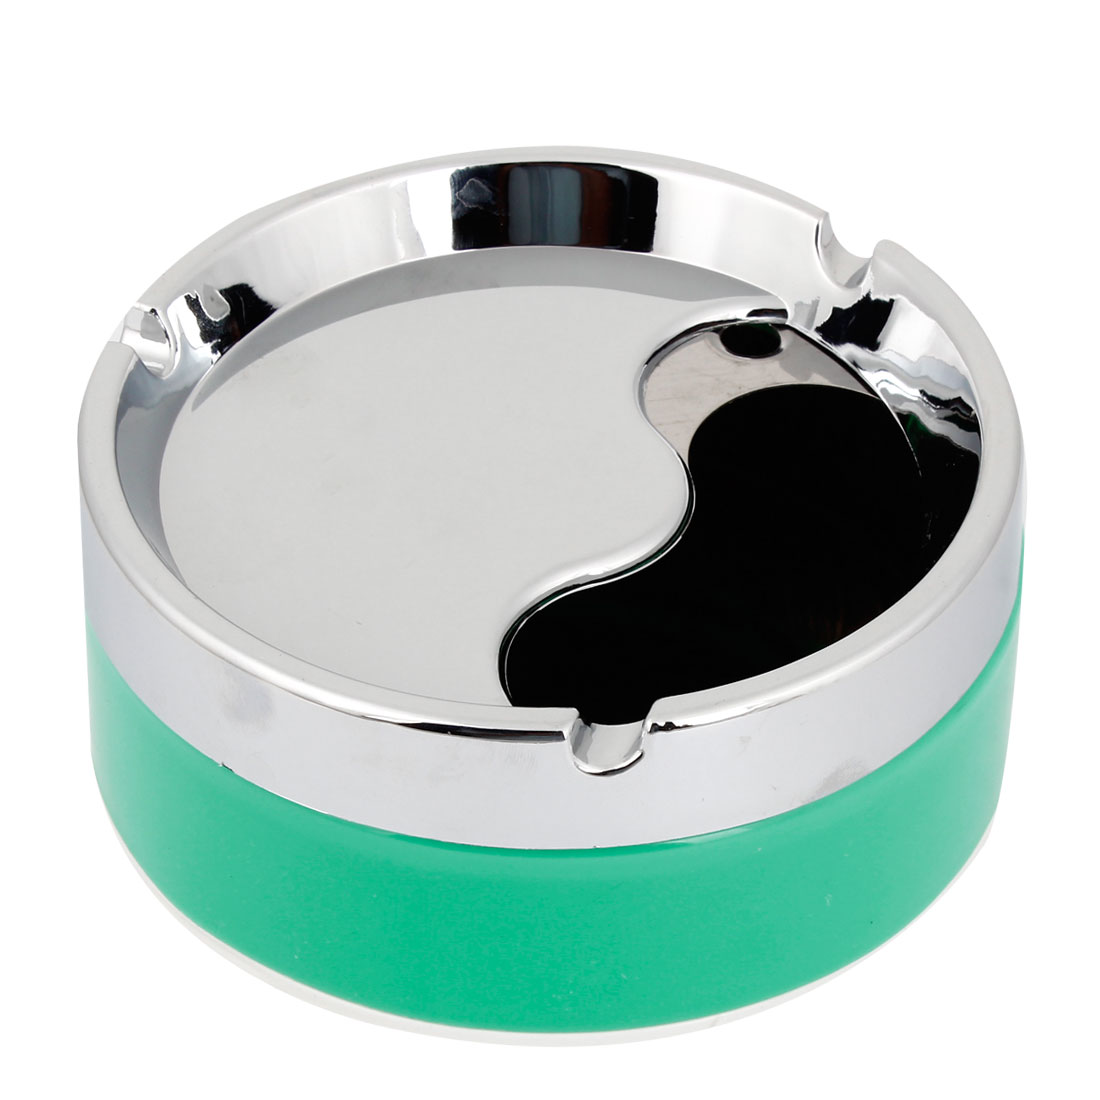 Silver Tone Rotation Lid Round Shaped Cigarette Smoking Ashtray Green